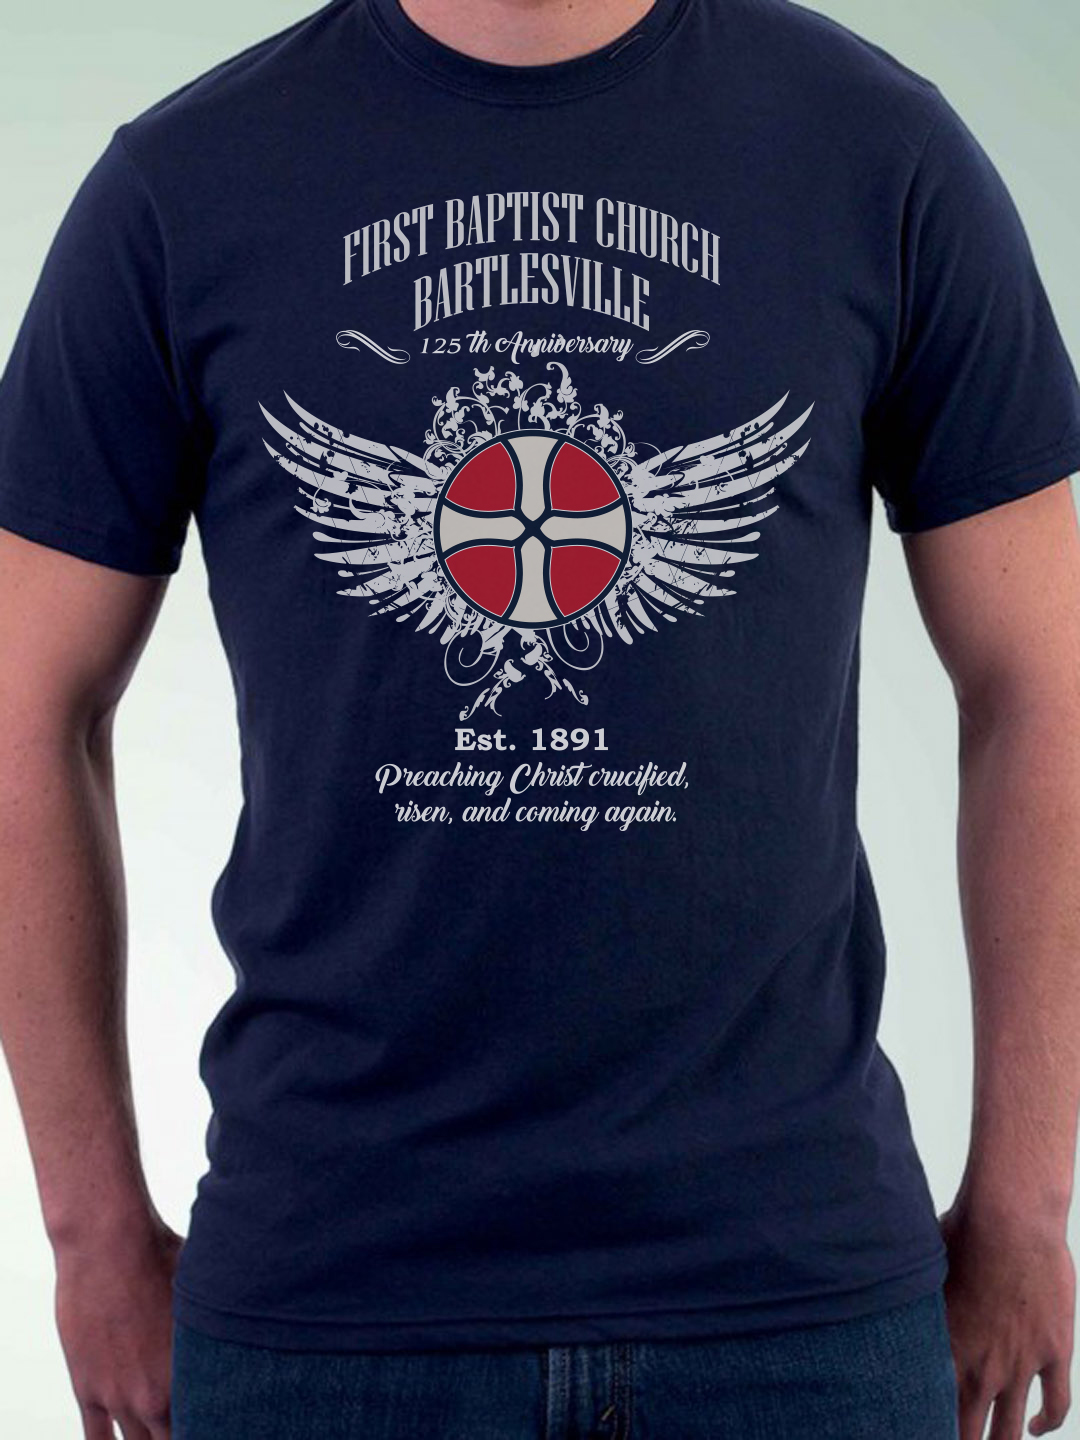 T Shirt Design (Design #12102874) Submitted To First Baptist Church  Bartlesville 125th